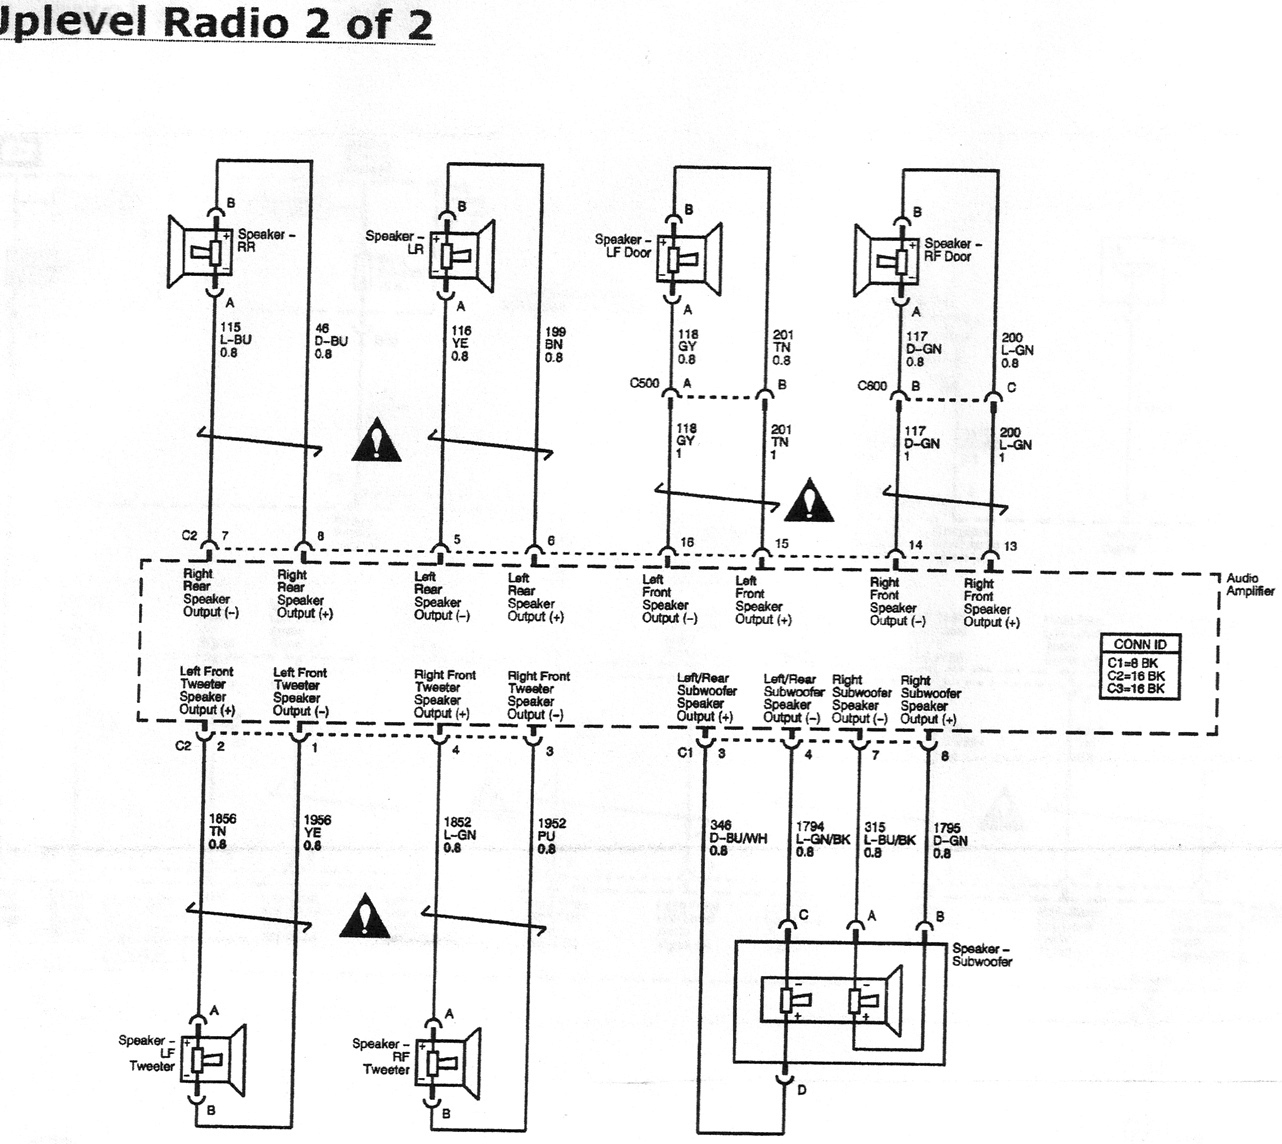 29802 monsoon amp speaker replacement monsoon_wiring_diagram_page_2 monsoon amp and speaker replacement saturn sky forums saturn firebird monsoon wiring diagram at fashall.co